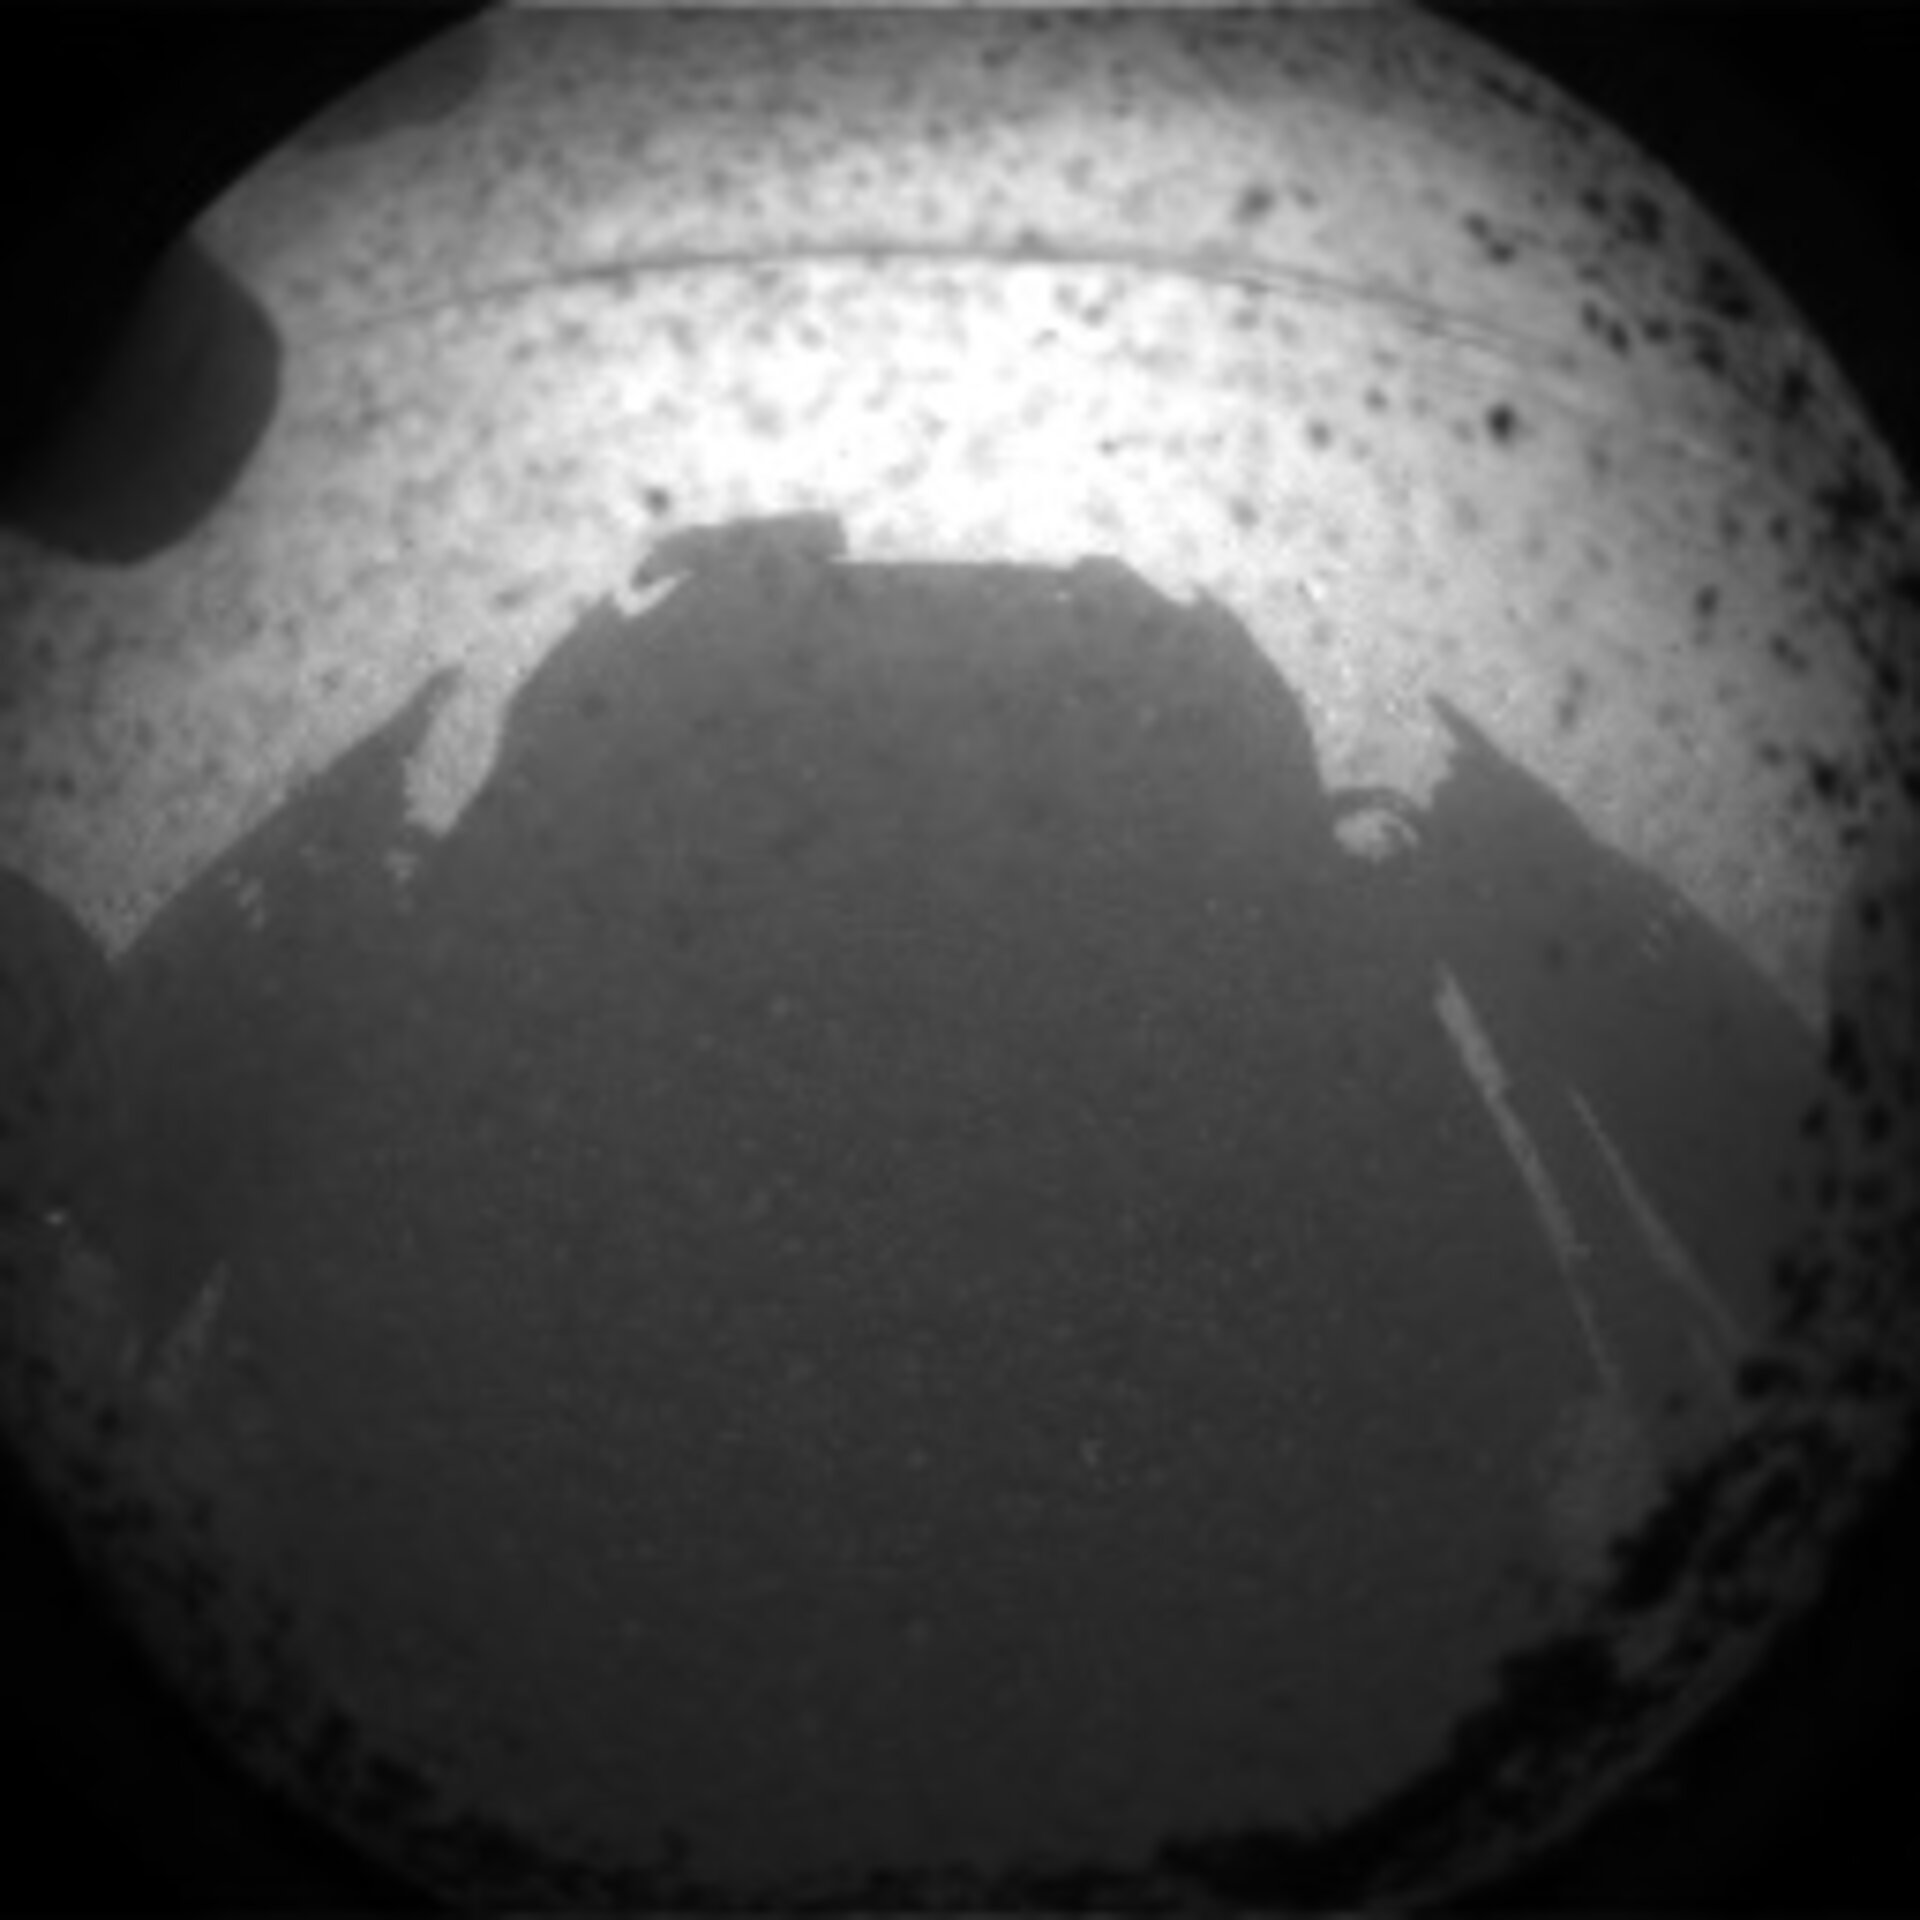 Curiosity's first view of Mars